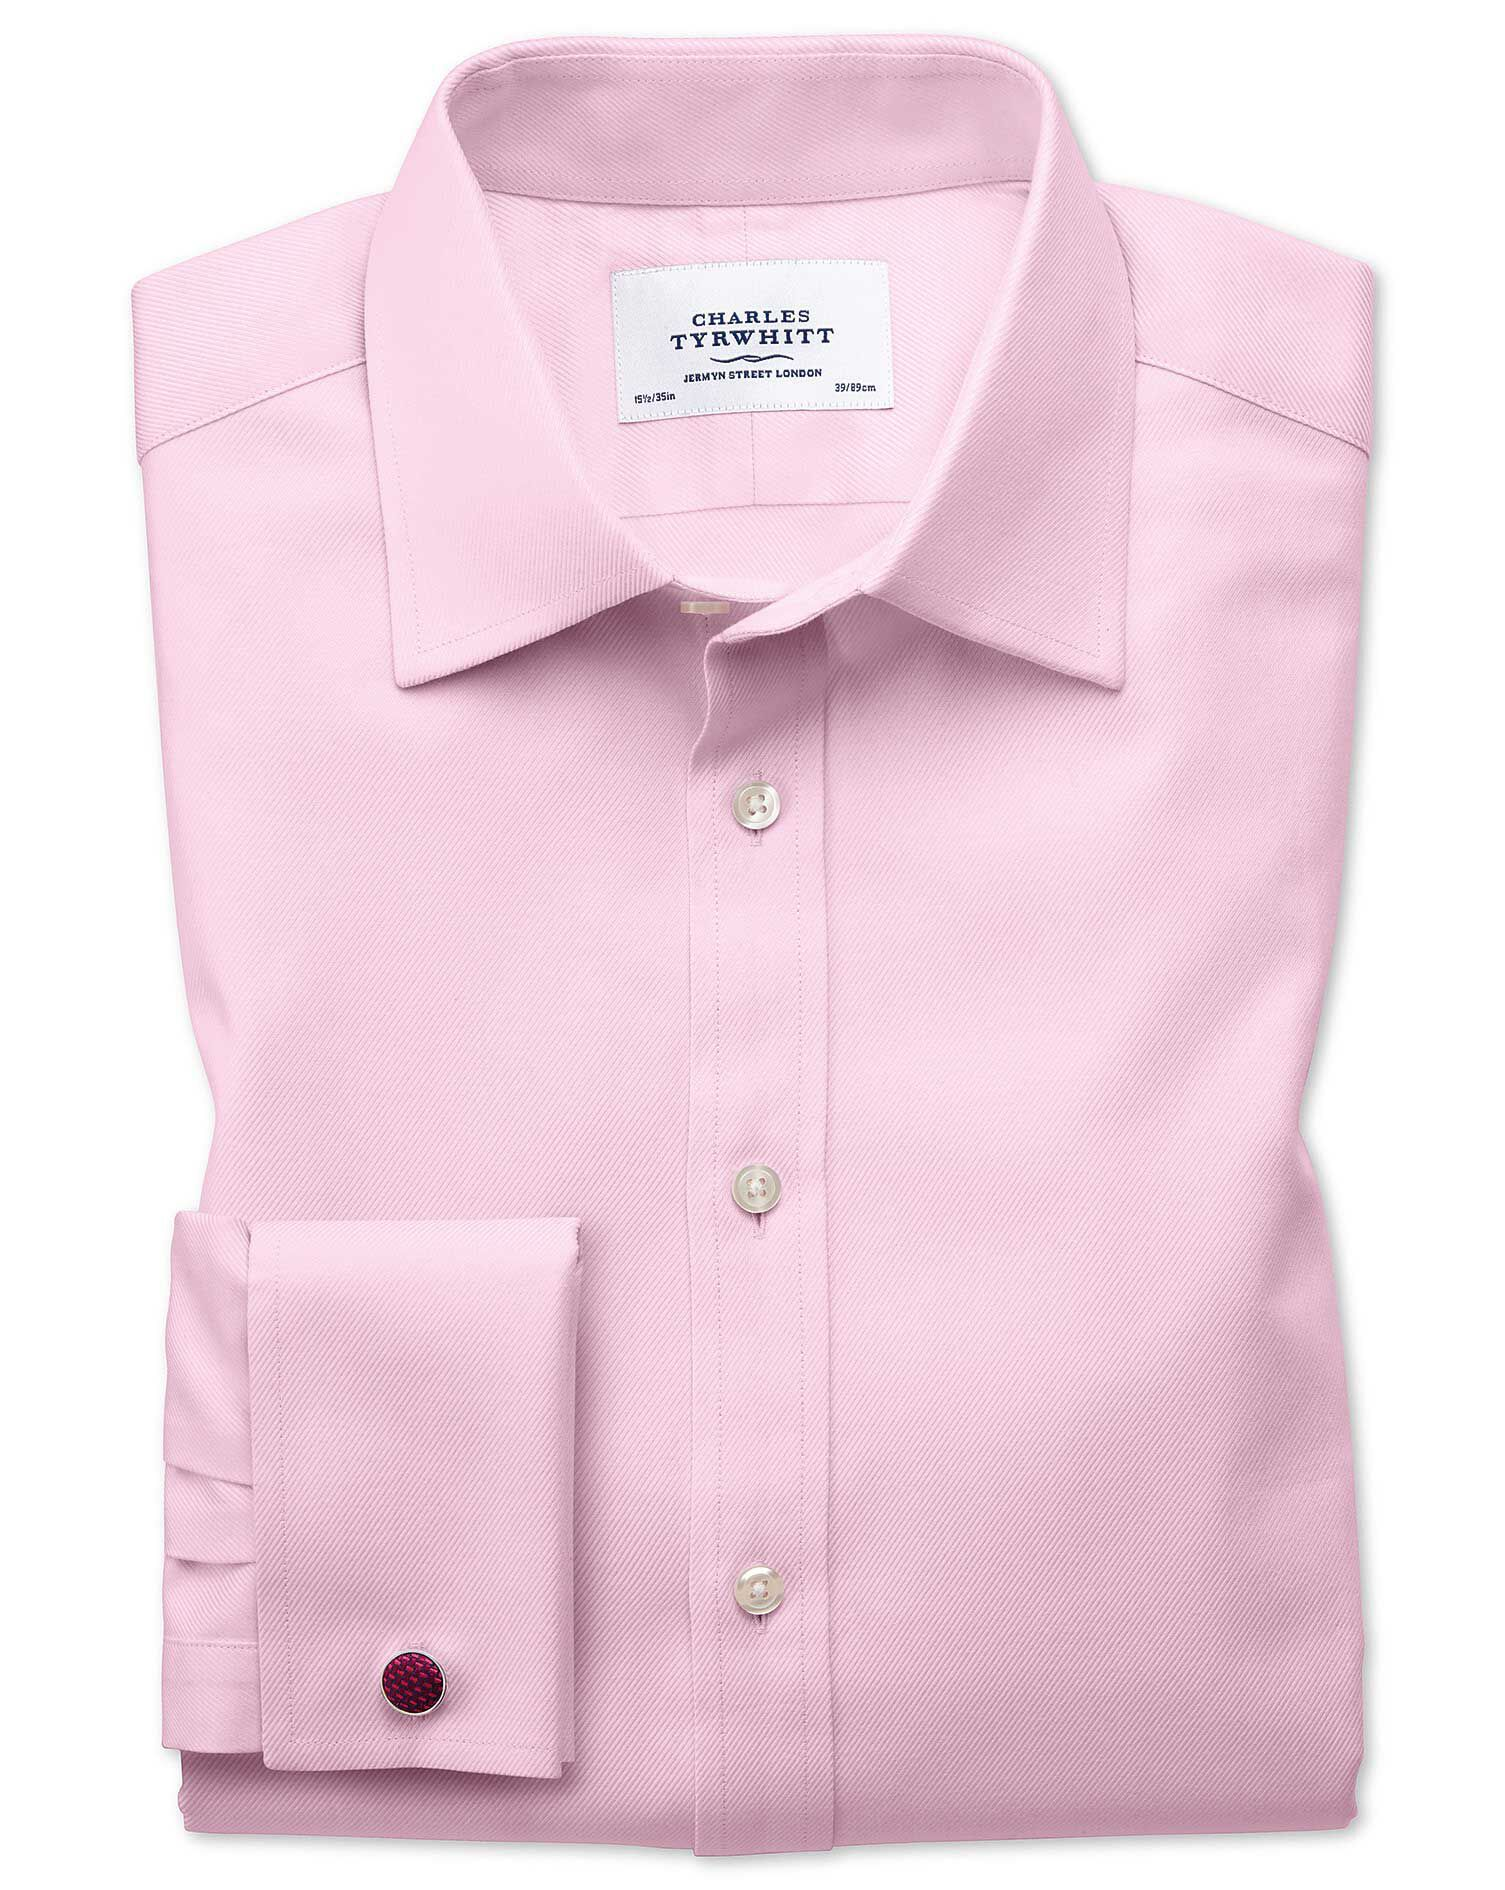 Classic Fit Egyptian Cotton Cavalry Twill Light Pink Formal Shirt Single Cuff Size 16.5/34 by Charle